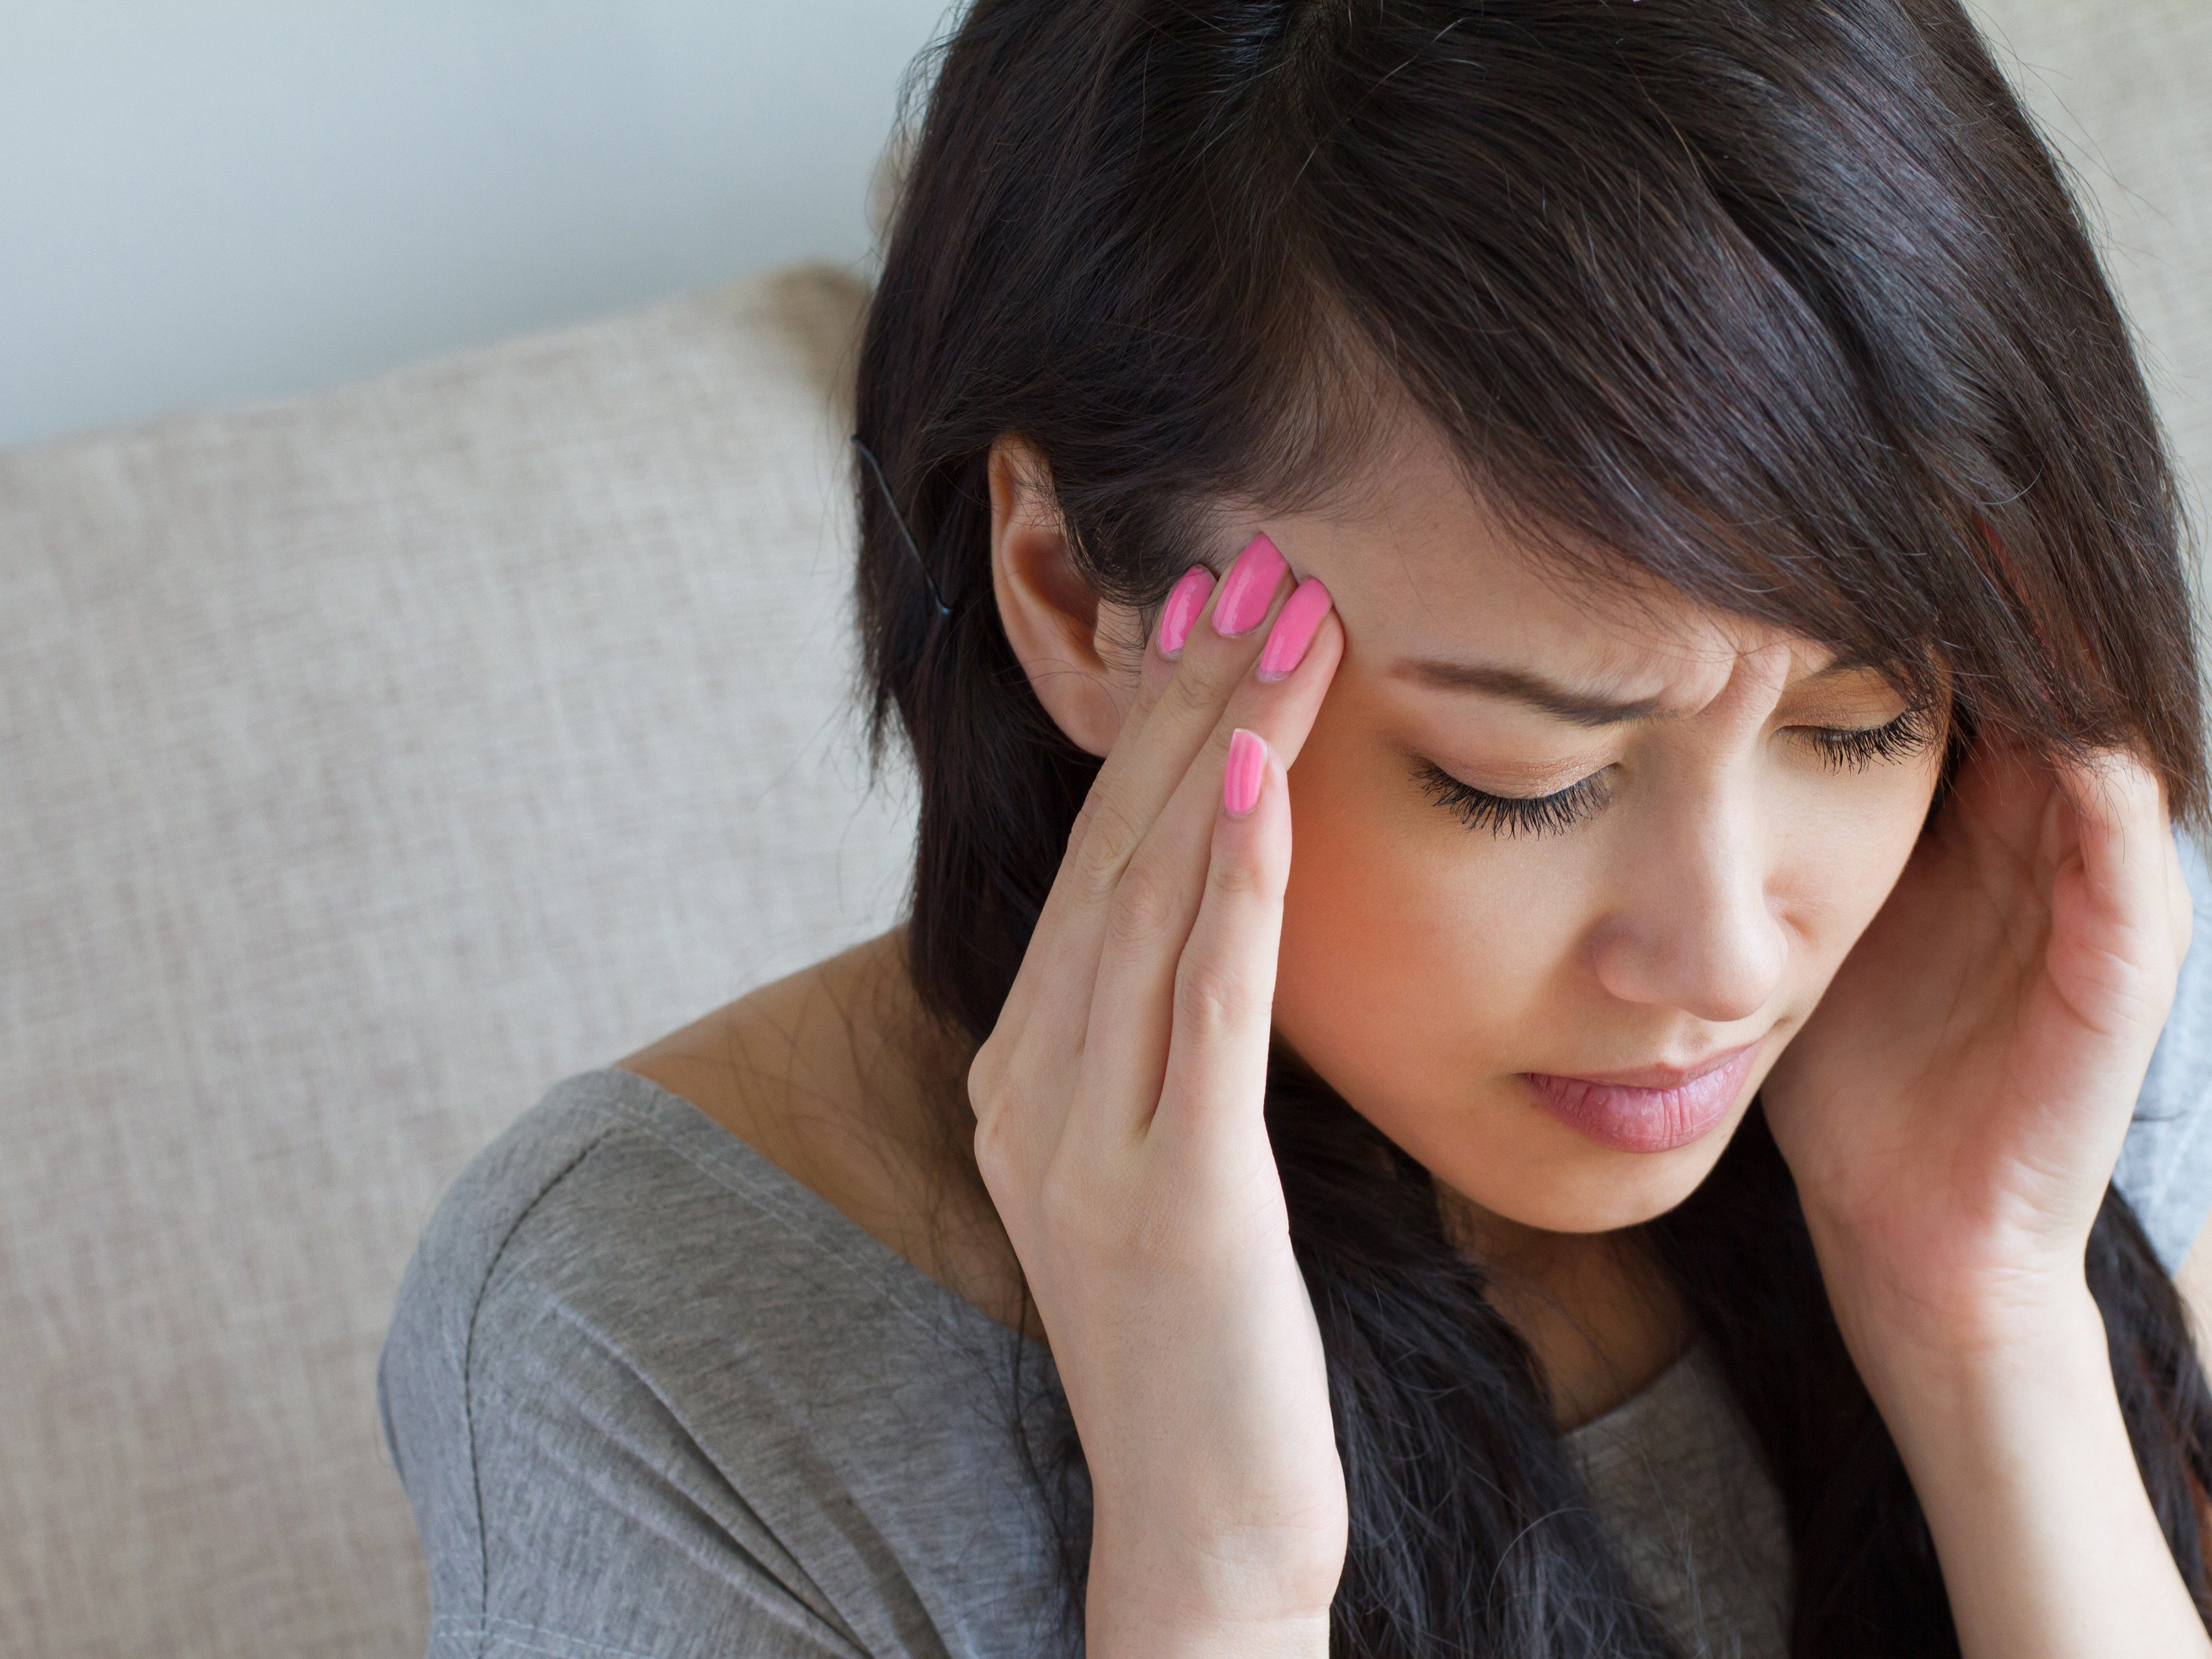 how to get relief from migraine